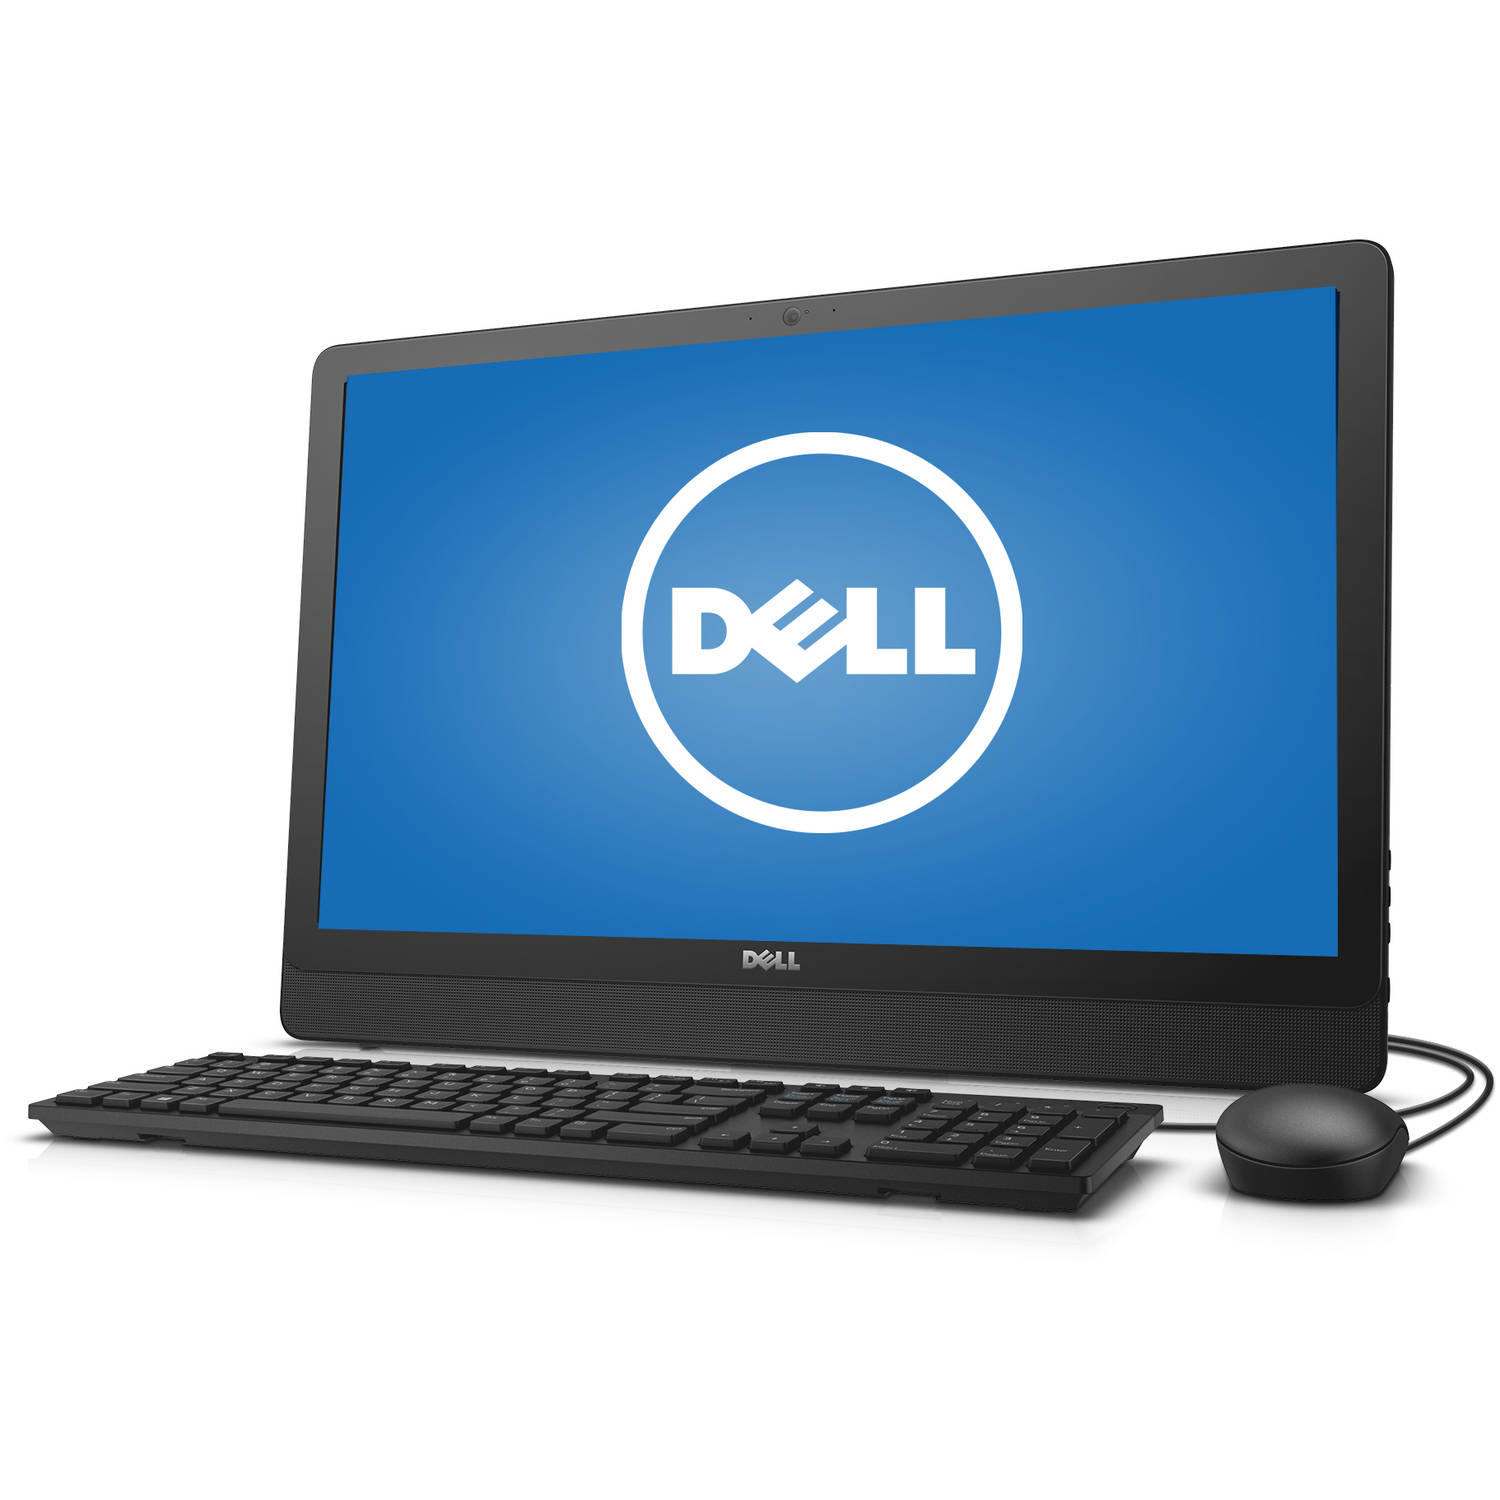 "Dell Inspiron 3455 i3455-1241BLK All-in-One Desktop PC with AMD E2-7110 Processor, 4GB Memory, 23.8"" Display, 500GB Hard Drive and Windows 10 Home"